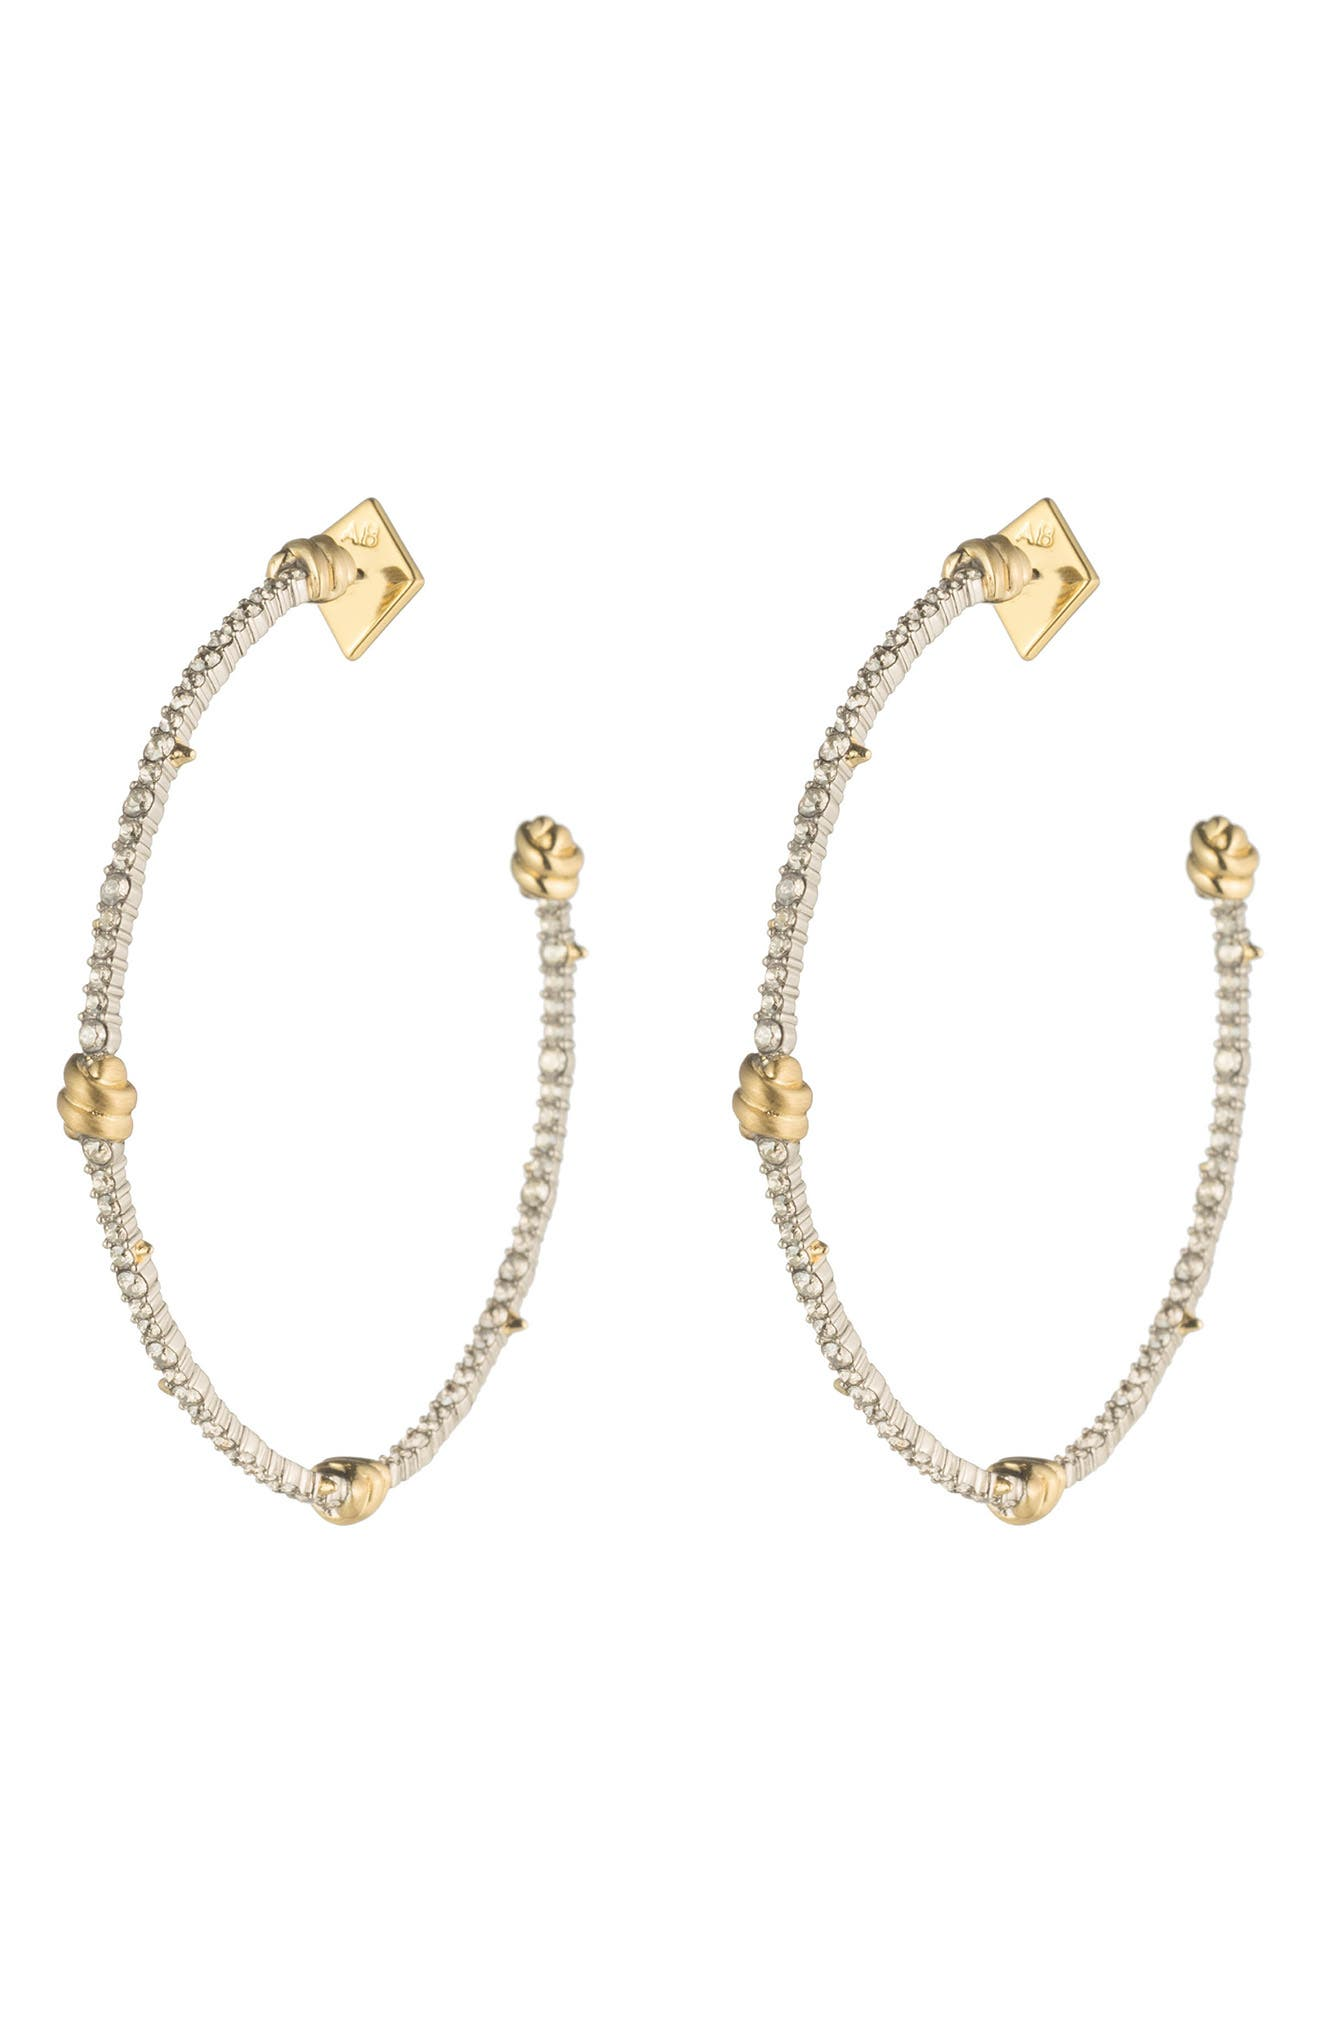 Crystal Pavé Knotted Hoop Earrings,                         Main,                         color, GOLD/ SILVER